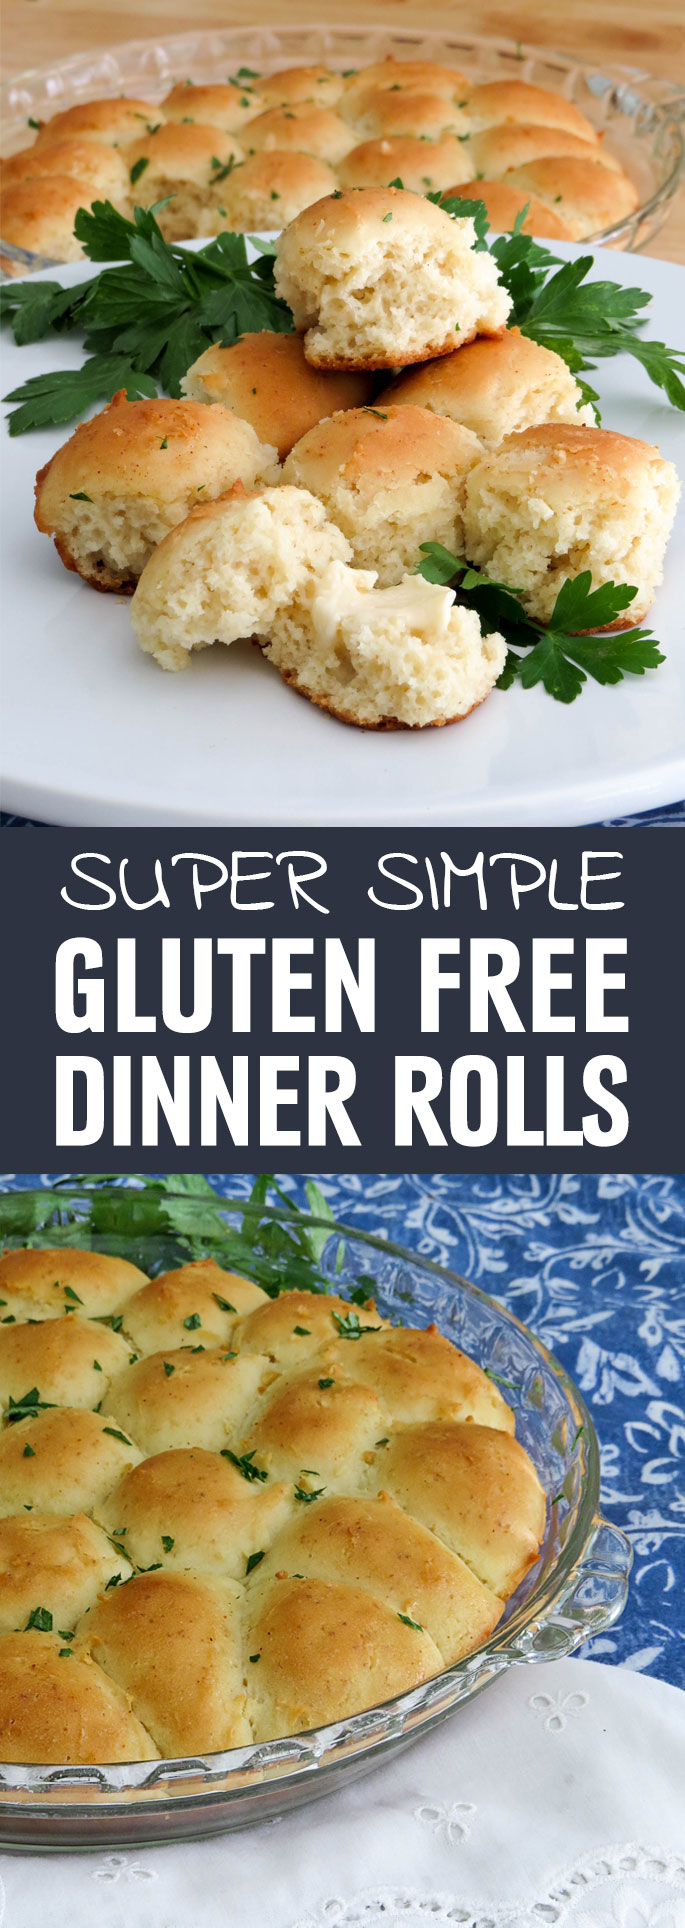 These dinner rolls are light, fluffy and will make you forget they are gluten-free. They will also make you forget about what a challenge making homemade rolls for an average weeknight meal used to be. Shared via http://www.gluteninsight.com